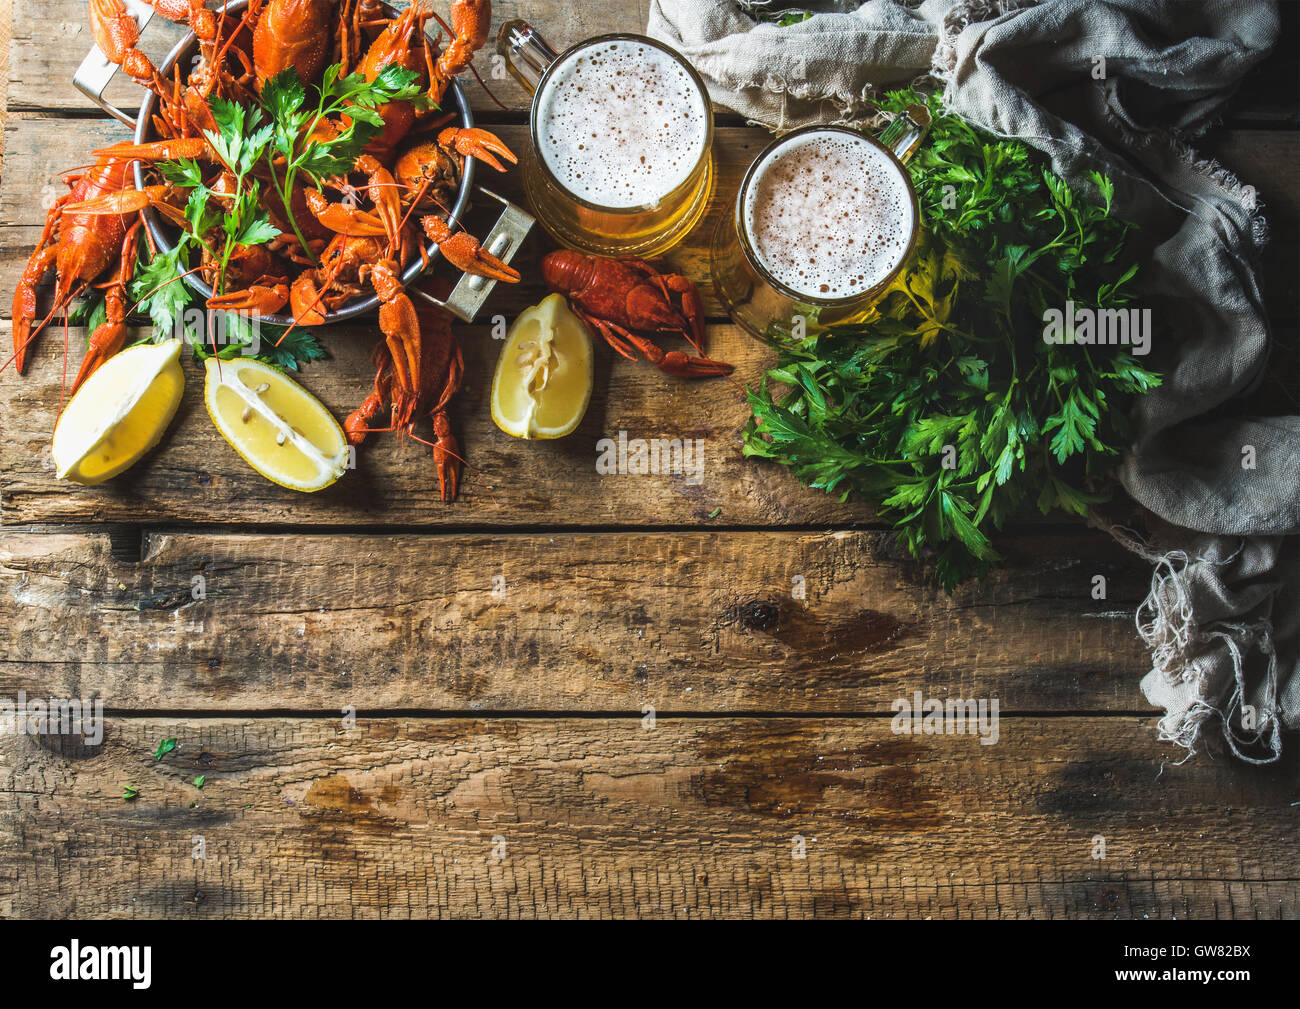 Wheat beer and boiled crayfish over old wooden rustic background - Stock Image